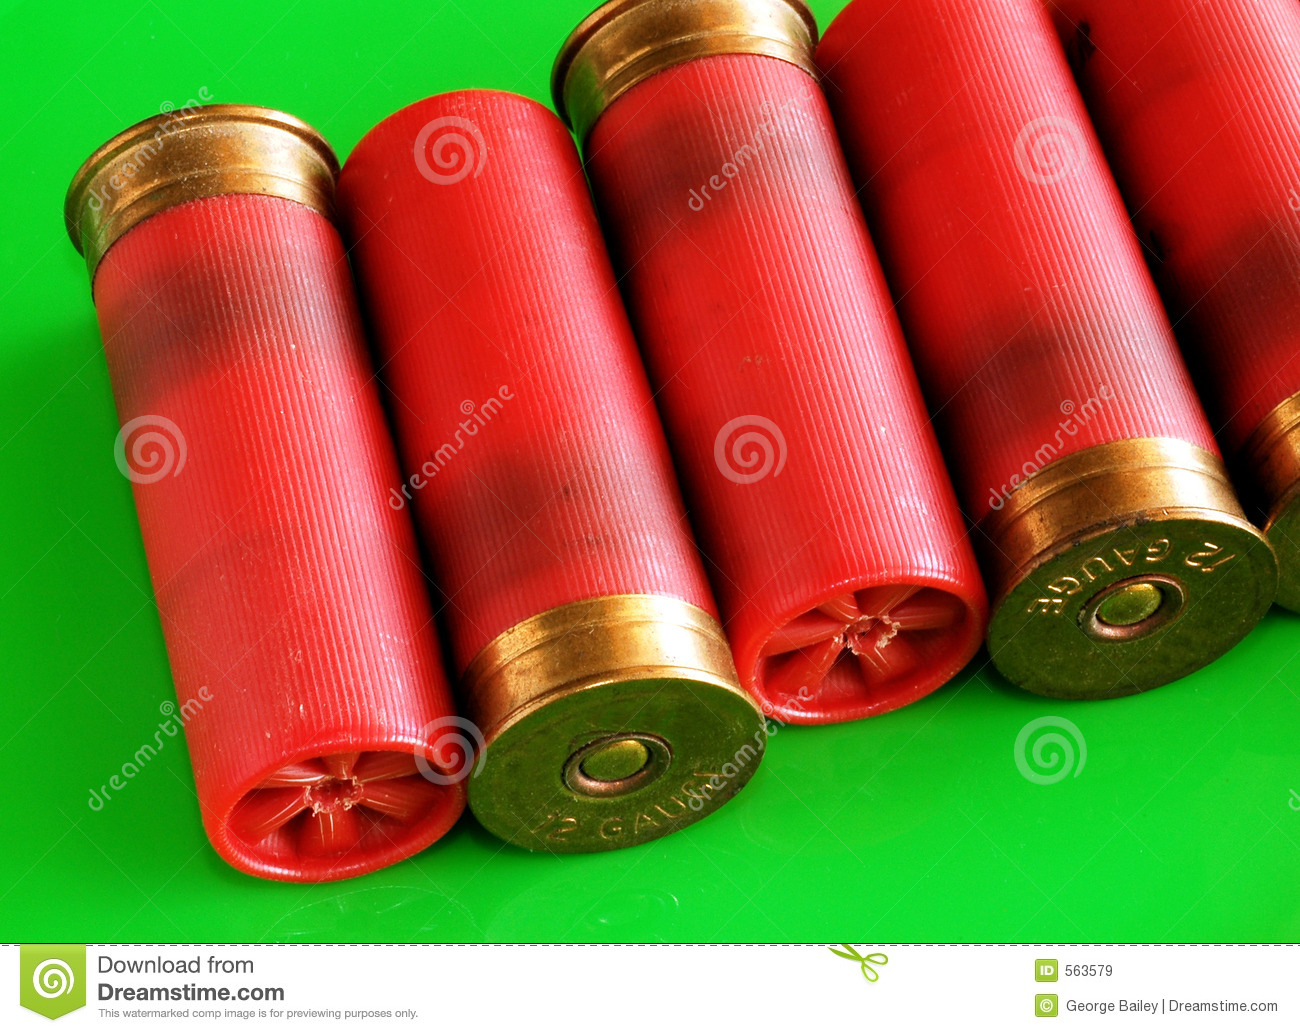 shotgun shells background - photo #4